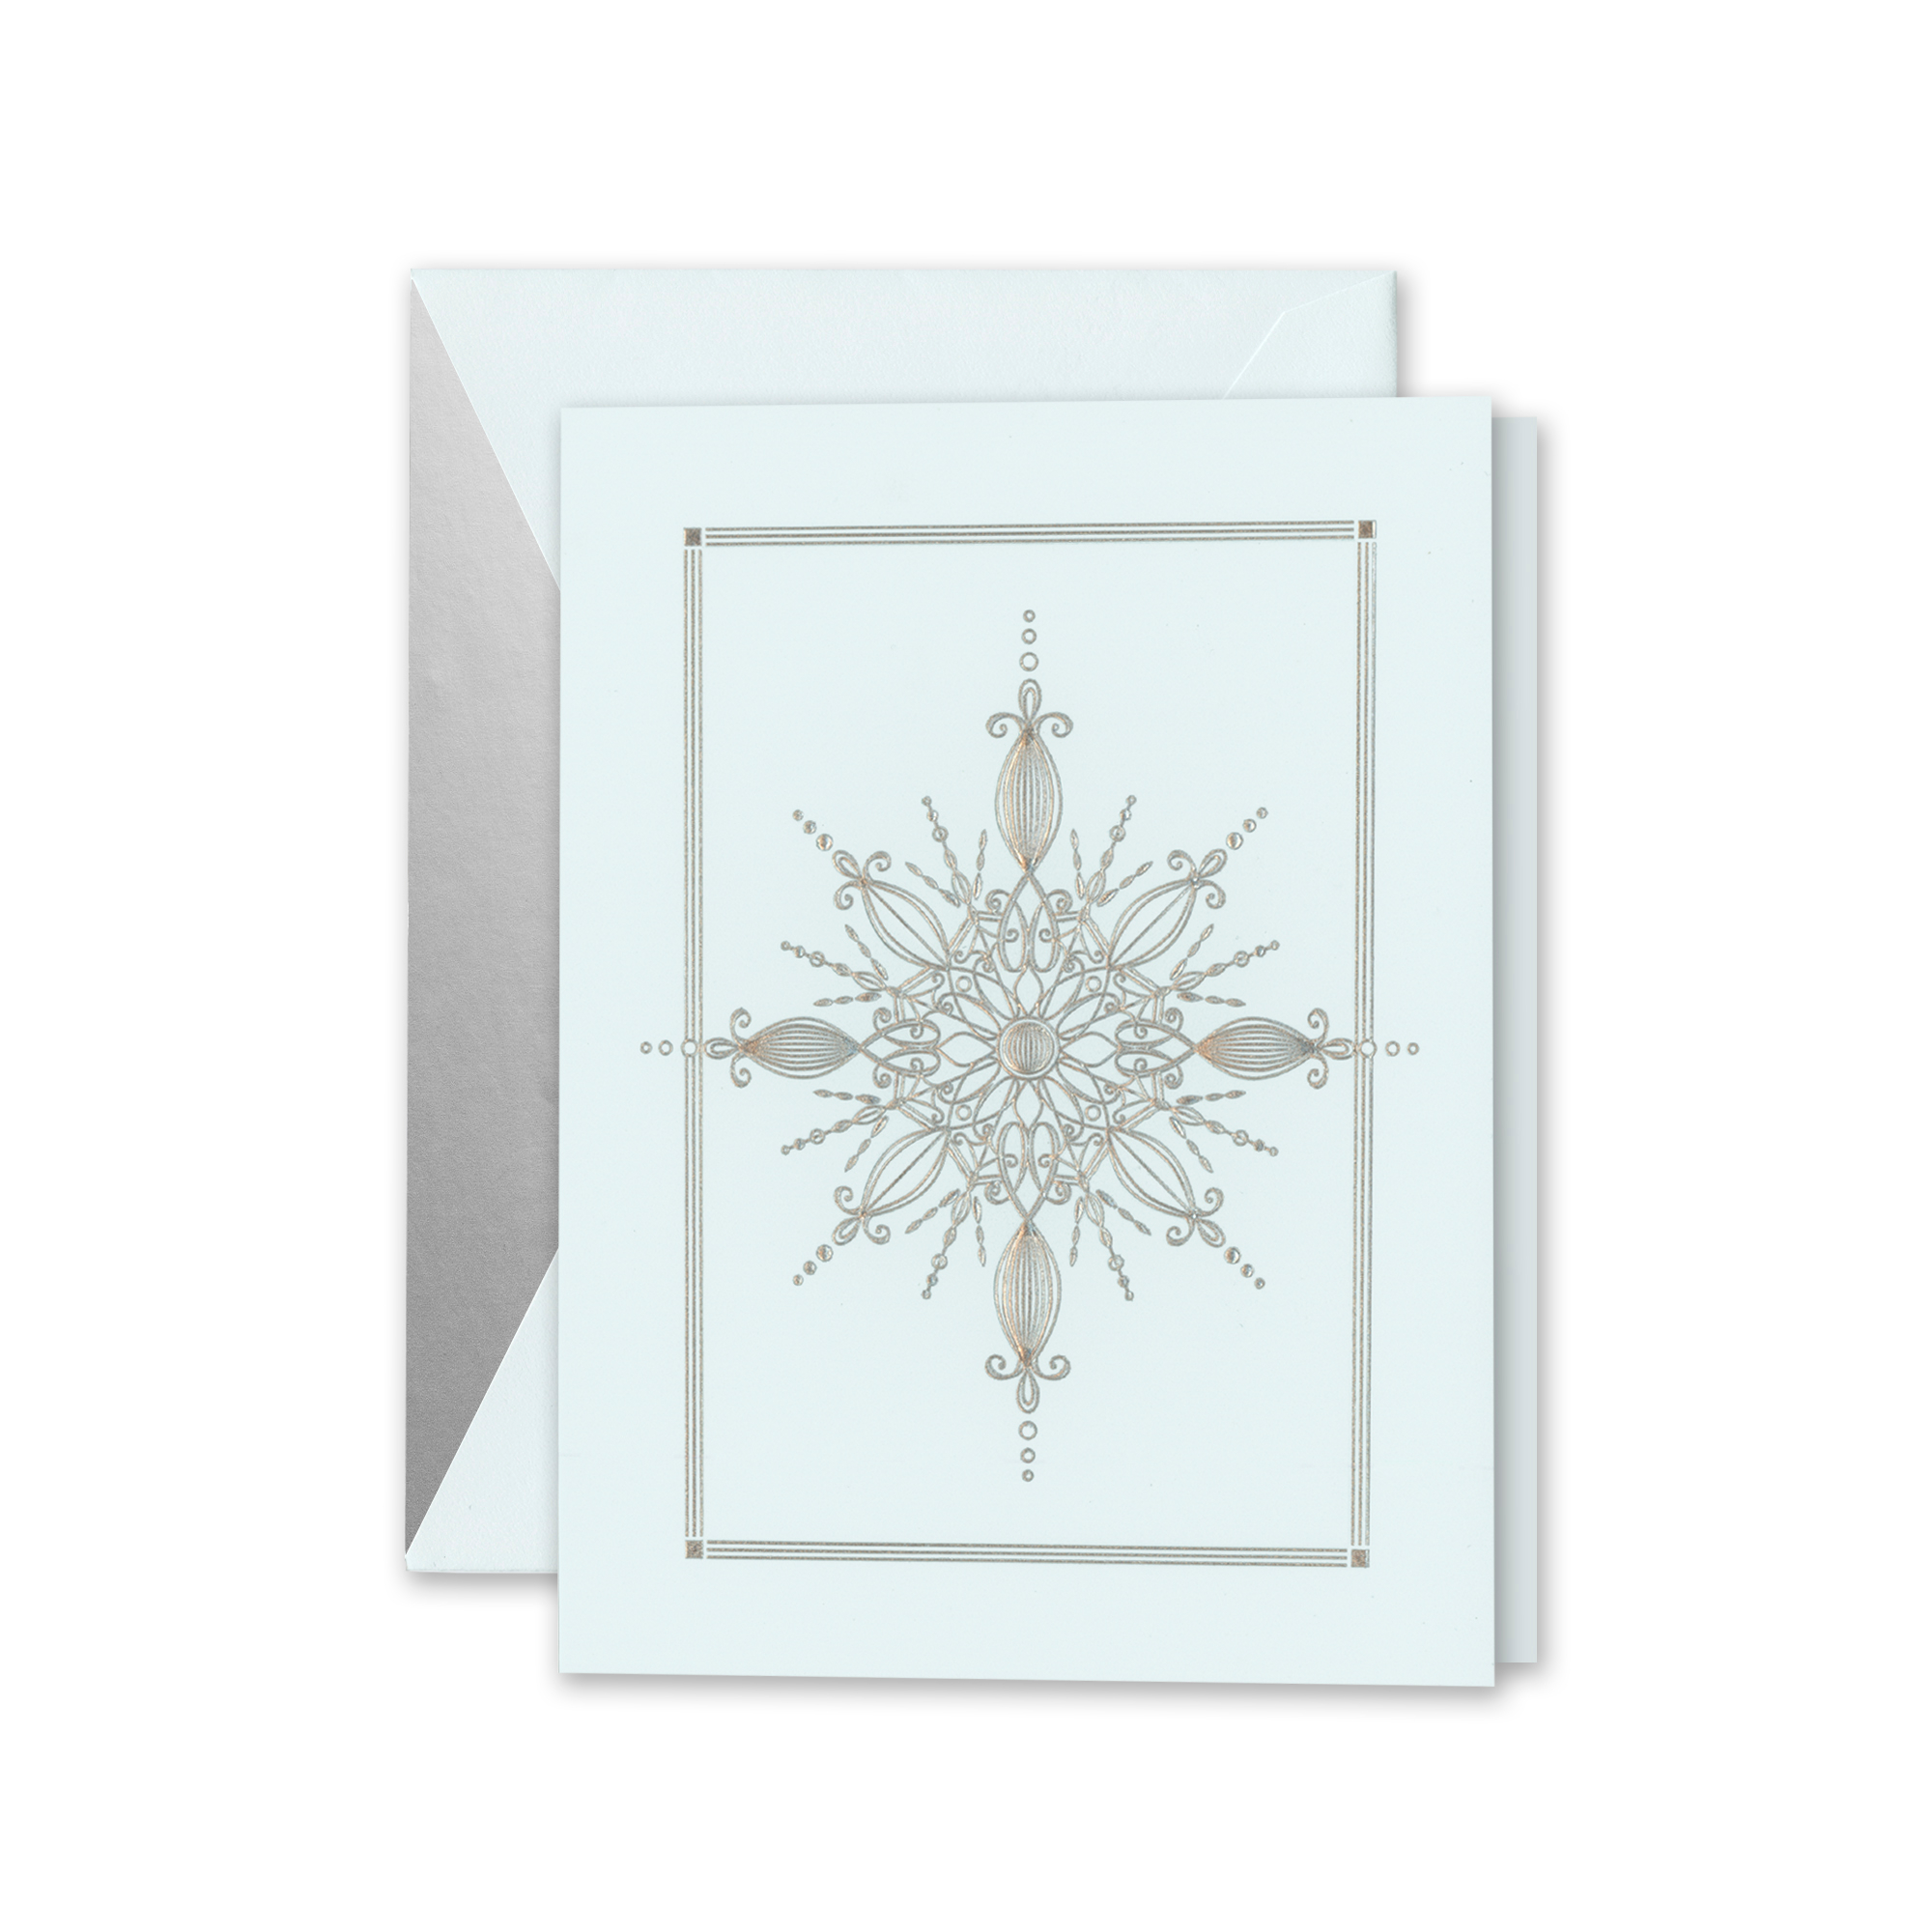 Crane & Co. Silver Snowflake Crystal Cards, Set of 10